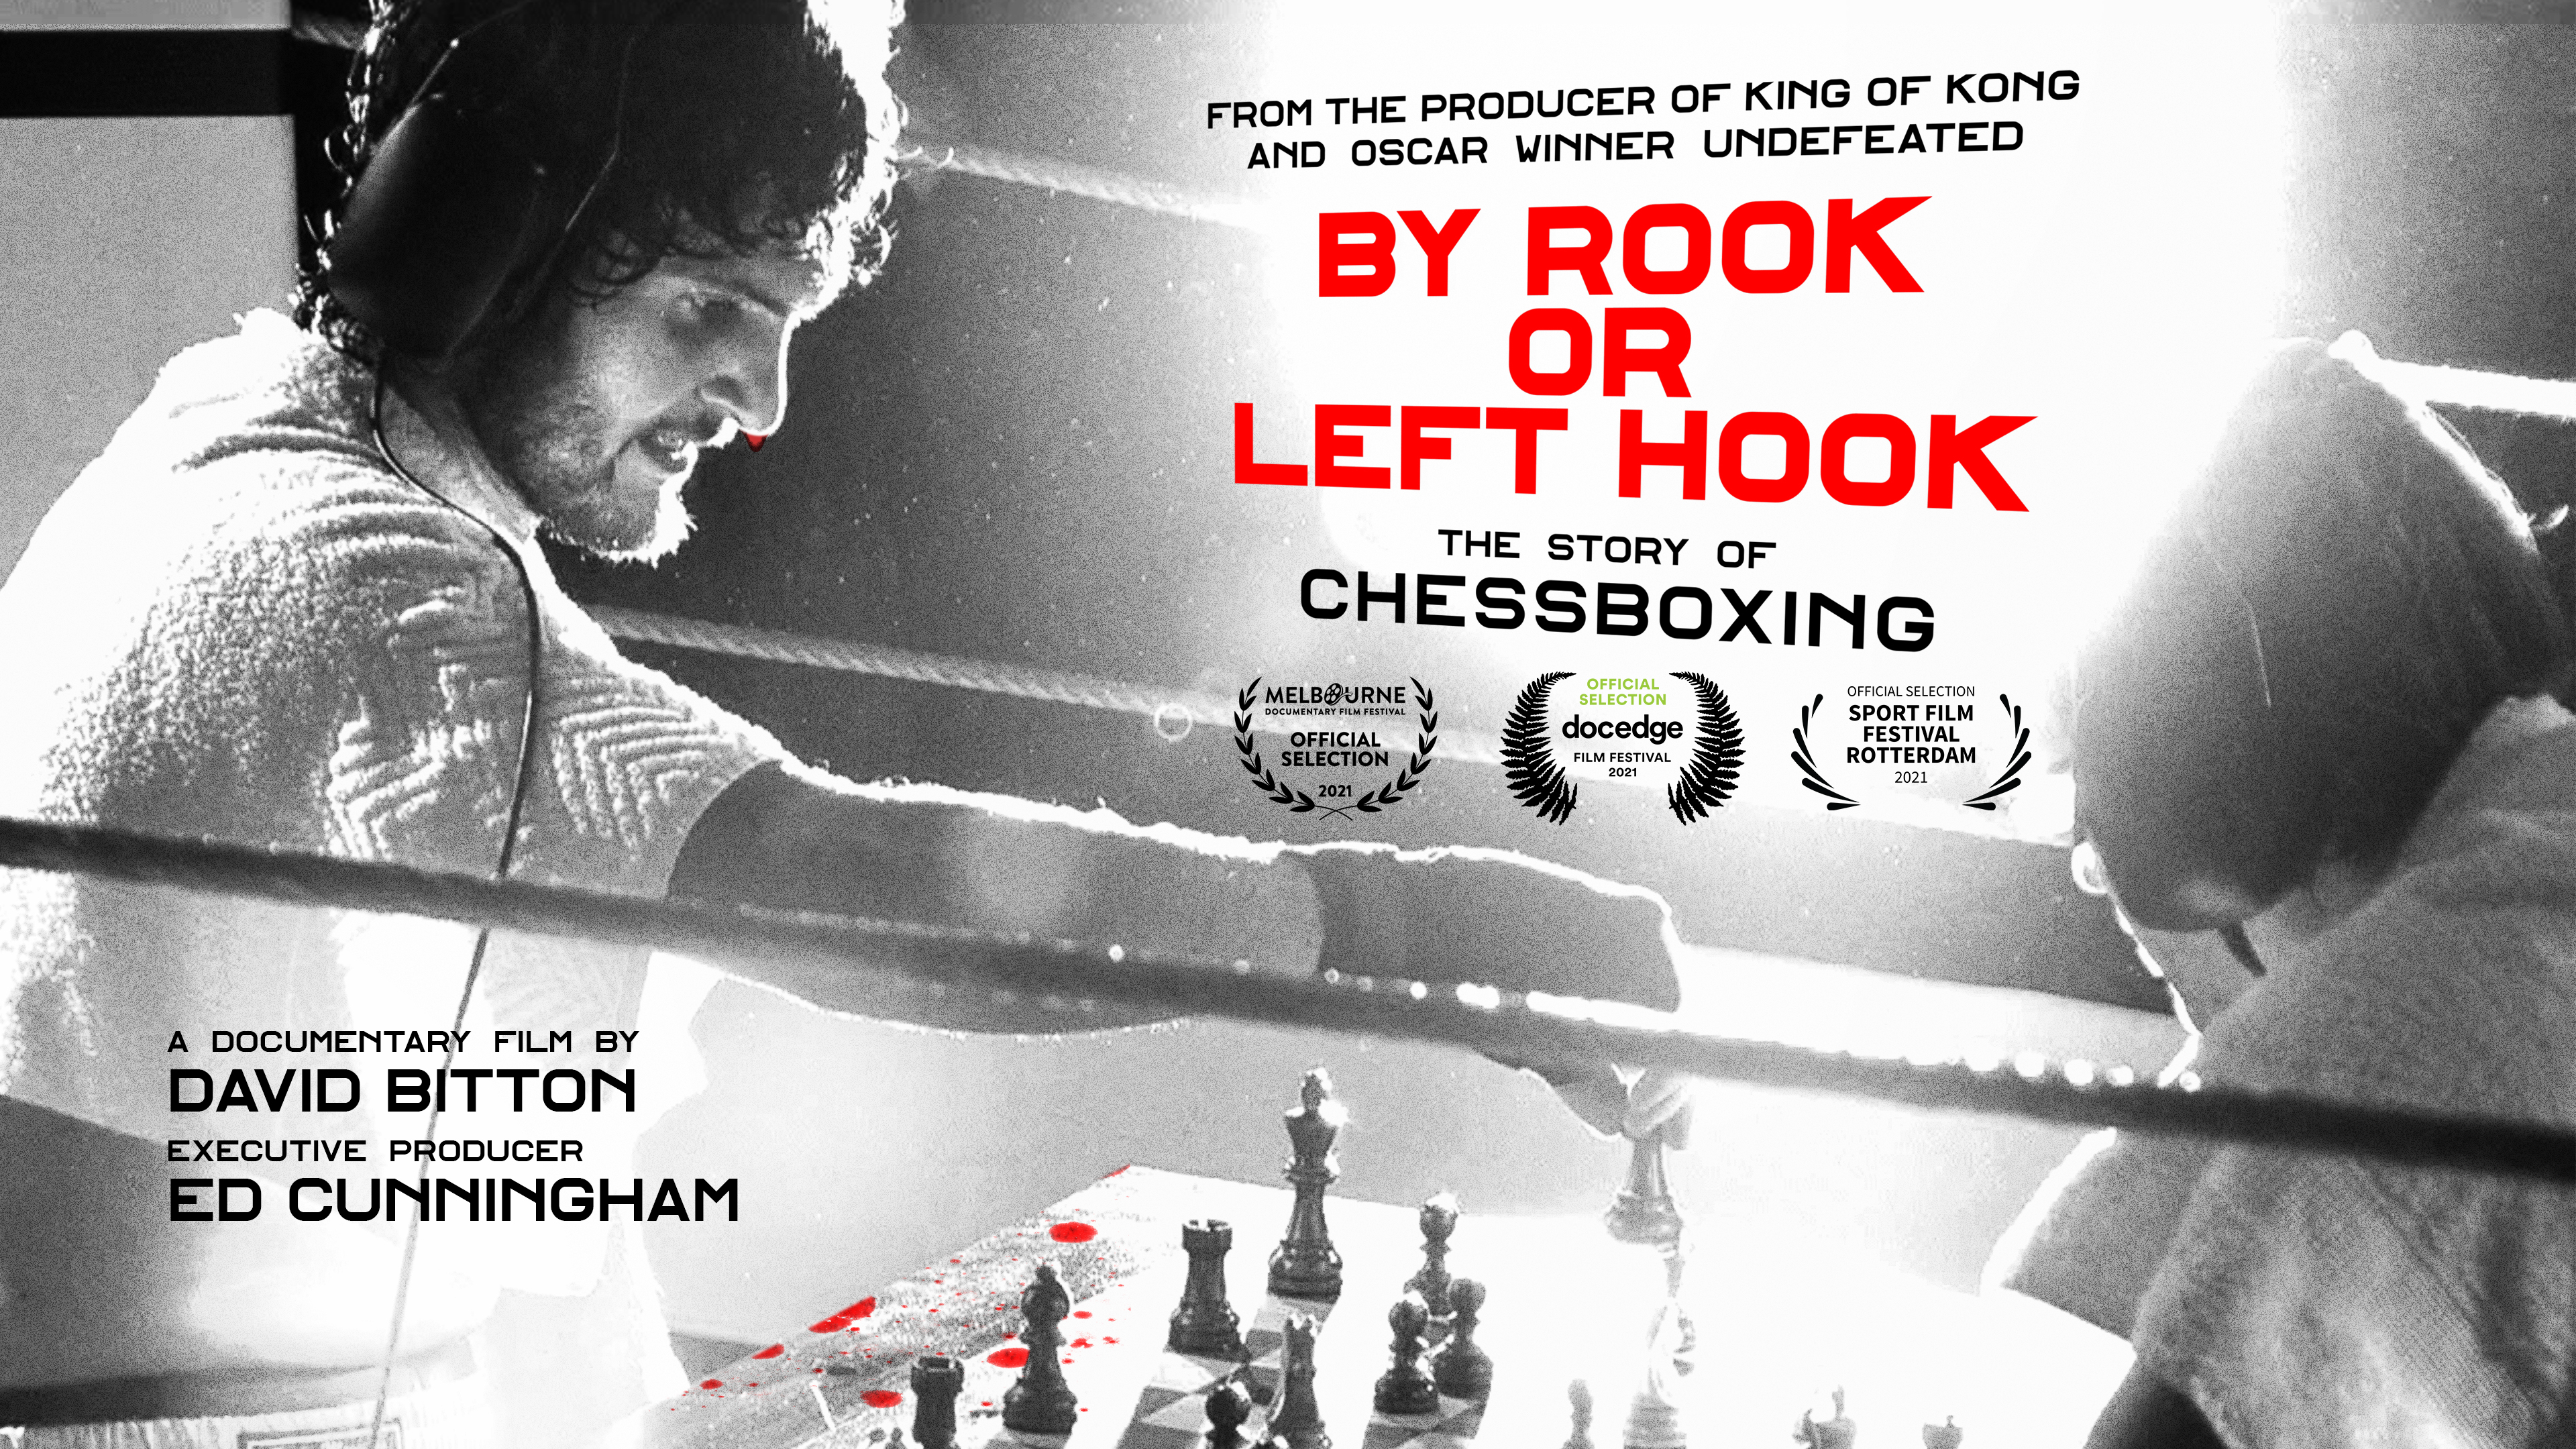 By Rook or Left Hook: The Story of Chessboxing